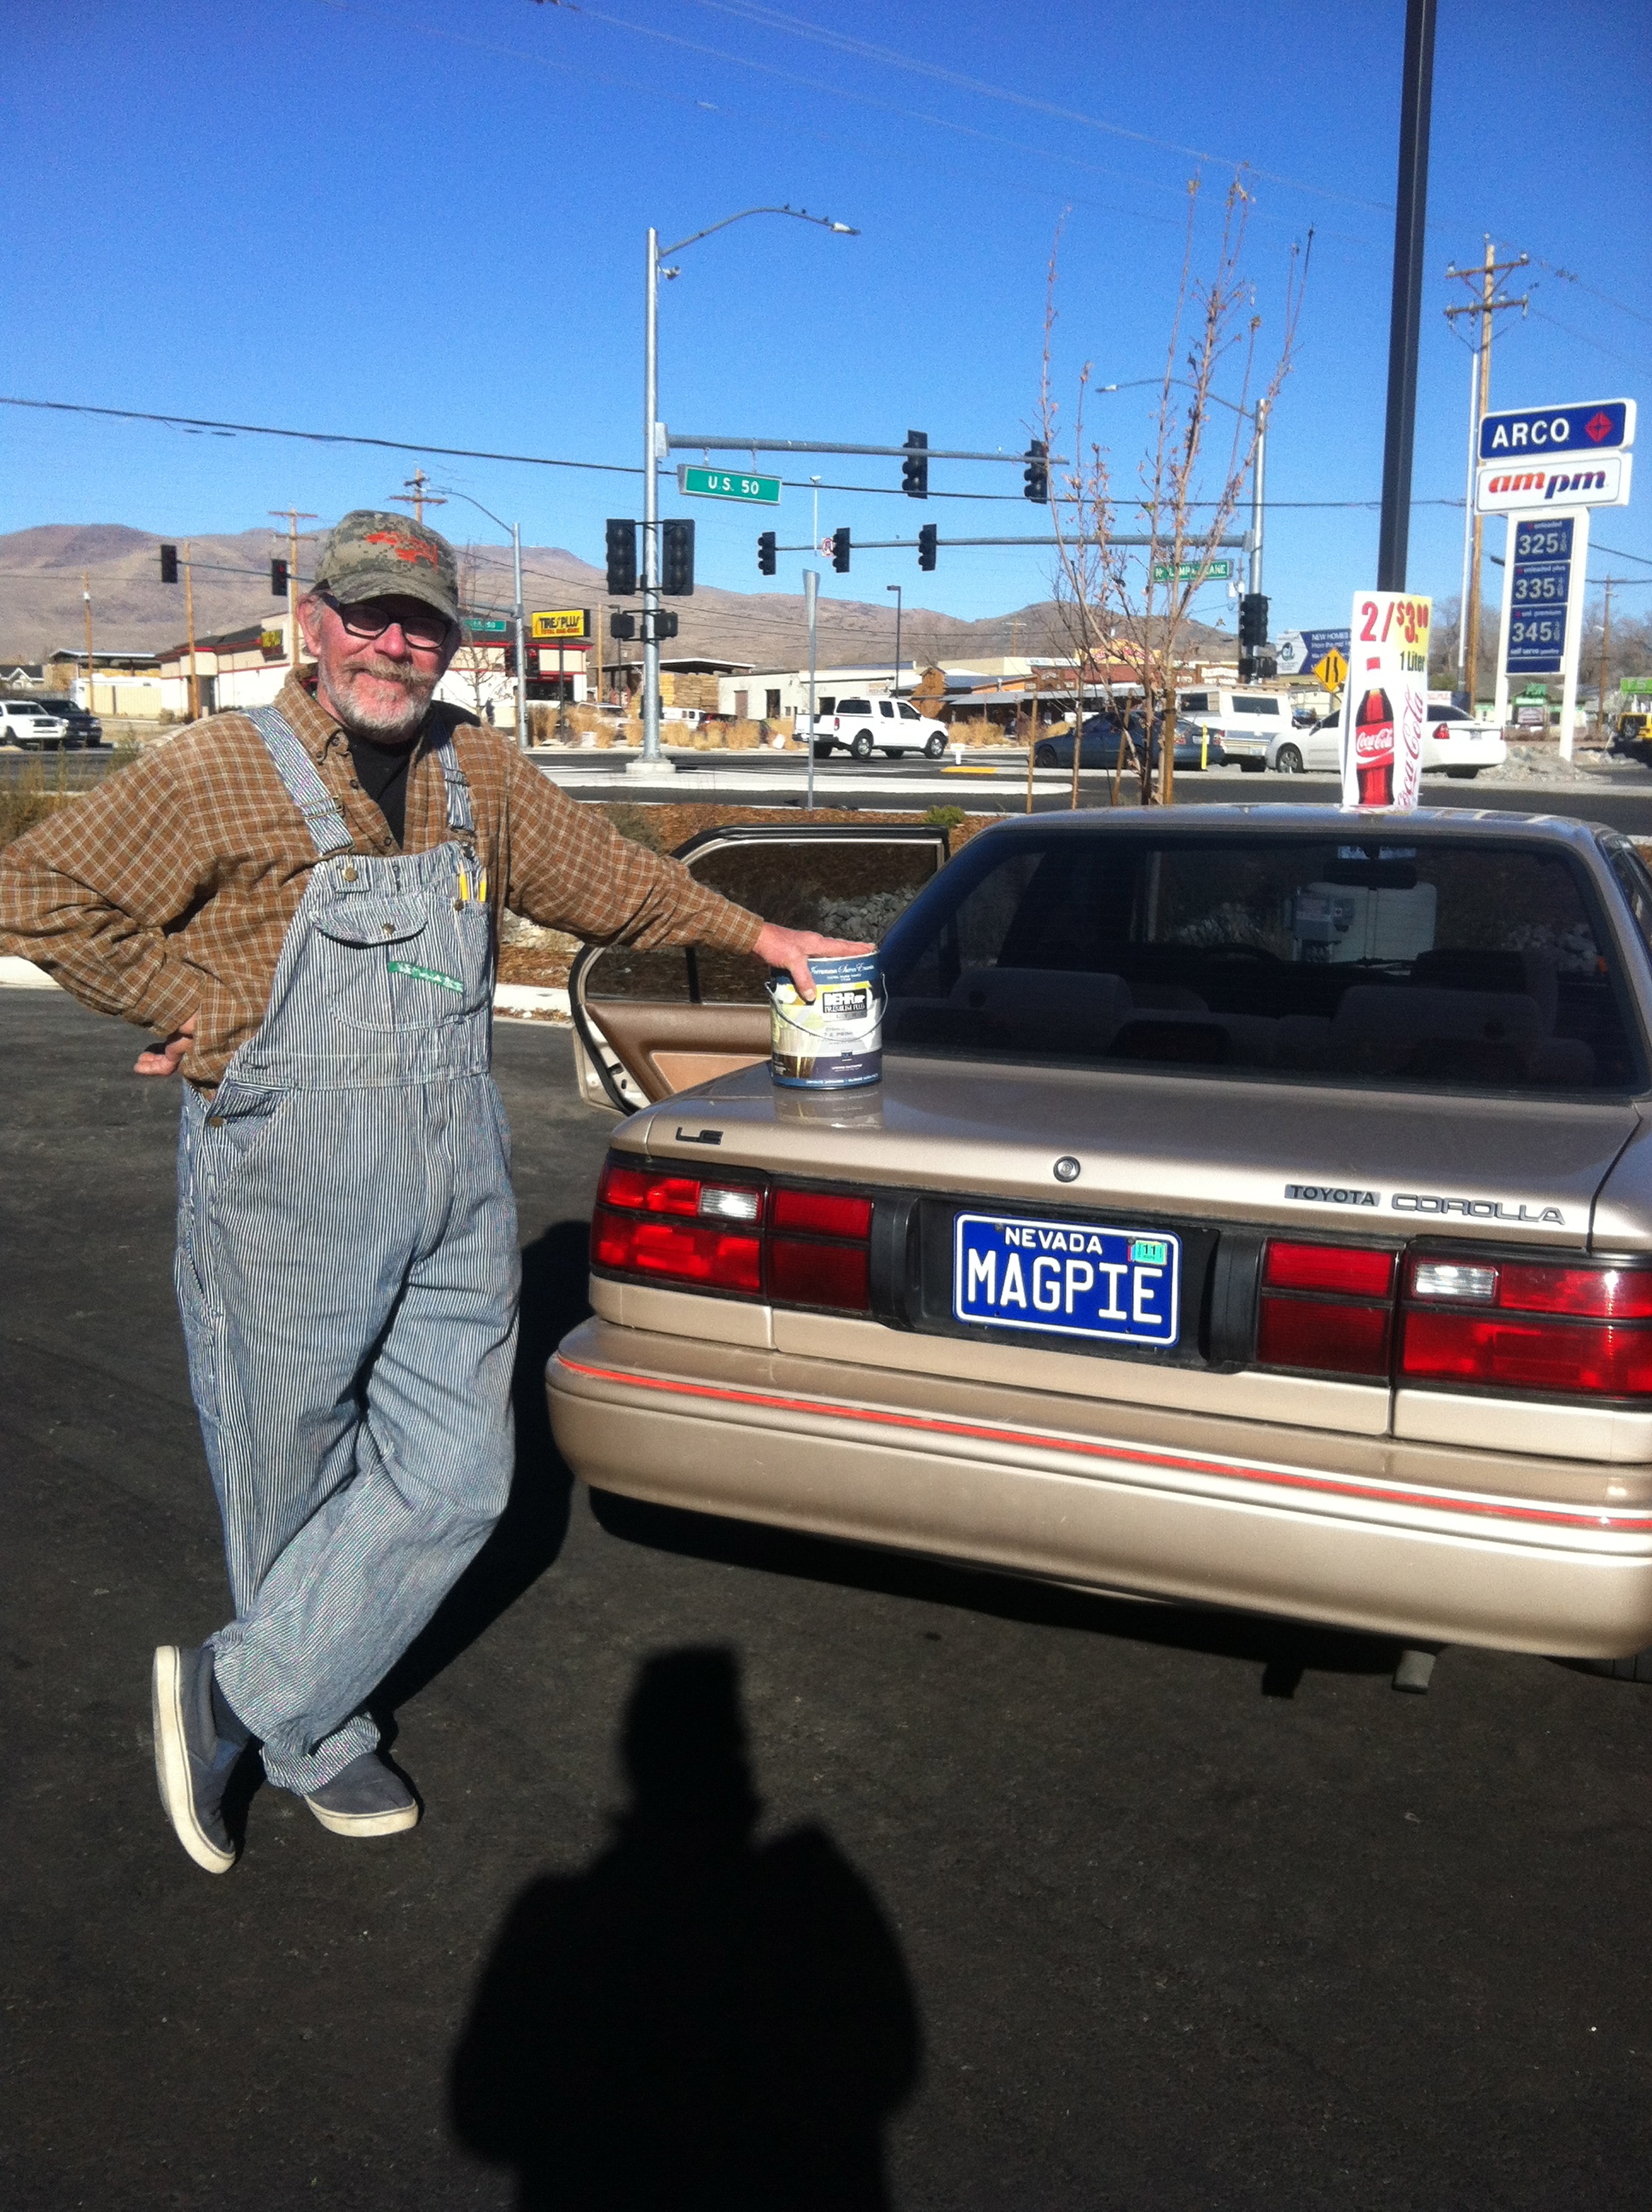 You can meet some great people when you sell stuff! Couldn't believe the  license plate! Nice to meet you Art!